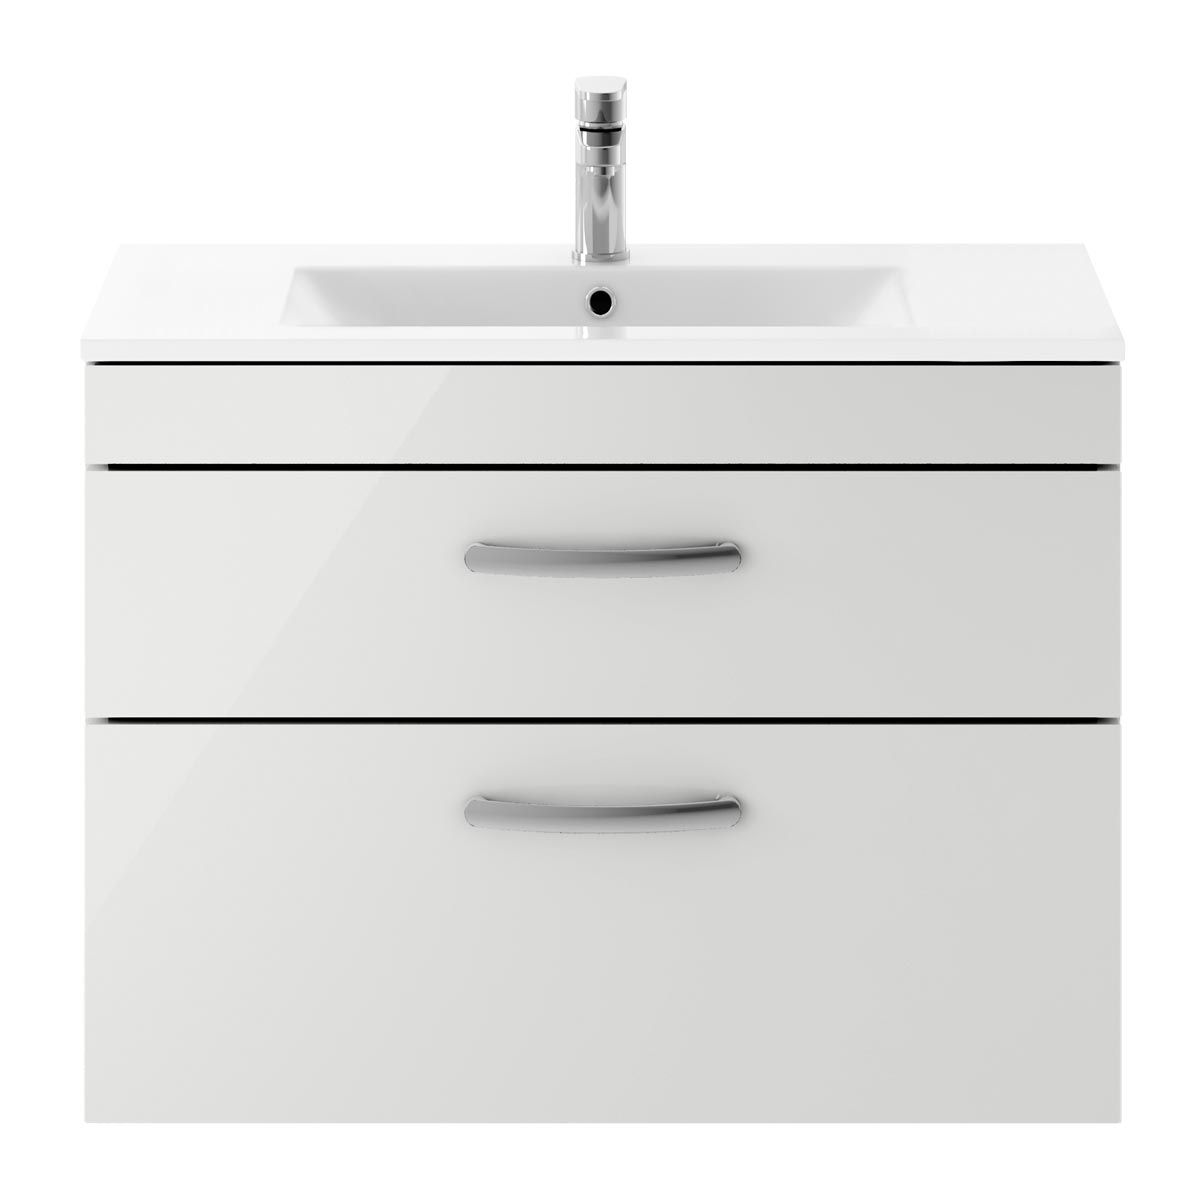 Nuie Athena Gloss Grey Mist 2 Drawer Wall Hung Vanity Unit with 18mm Profile Basin 800mm